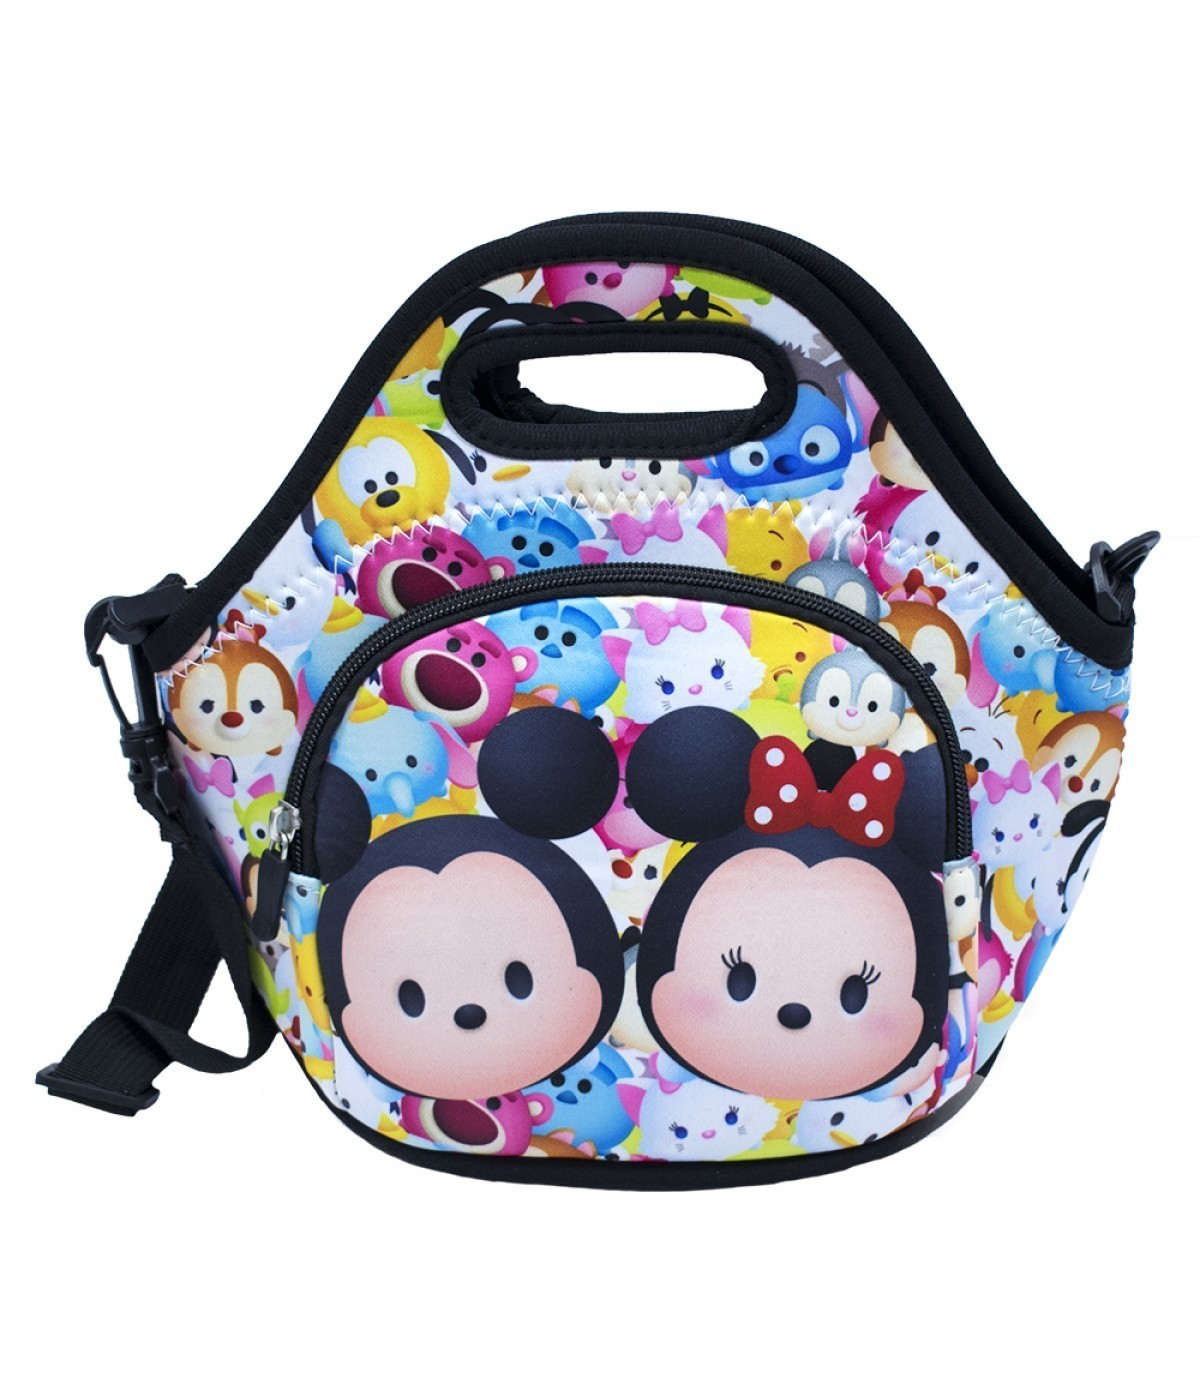 Bolsa Térmica Mickey Minnie Tsumtsum e Personagens: Disney